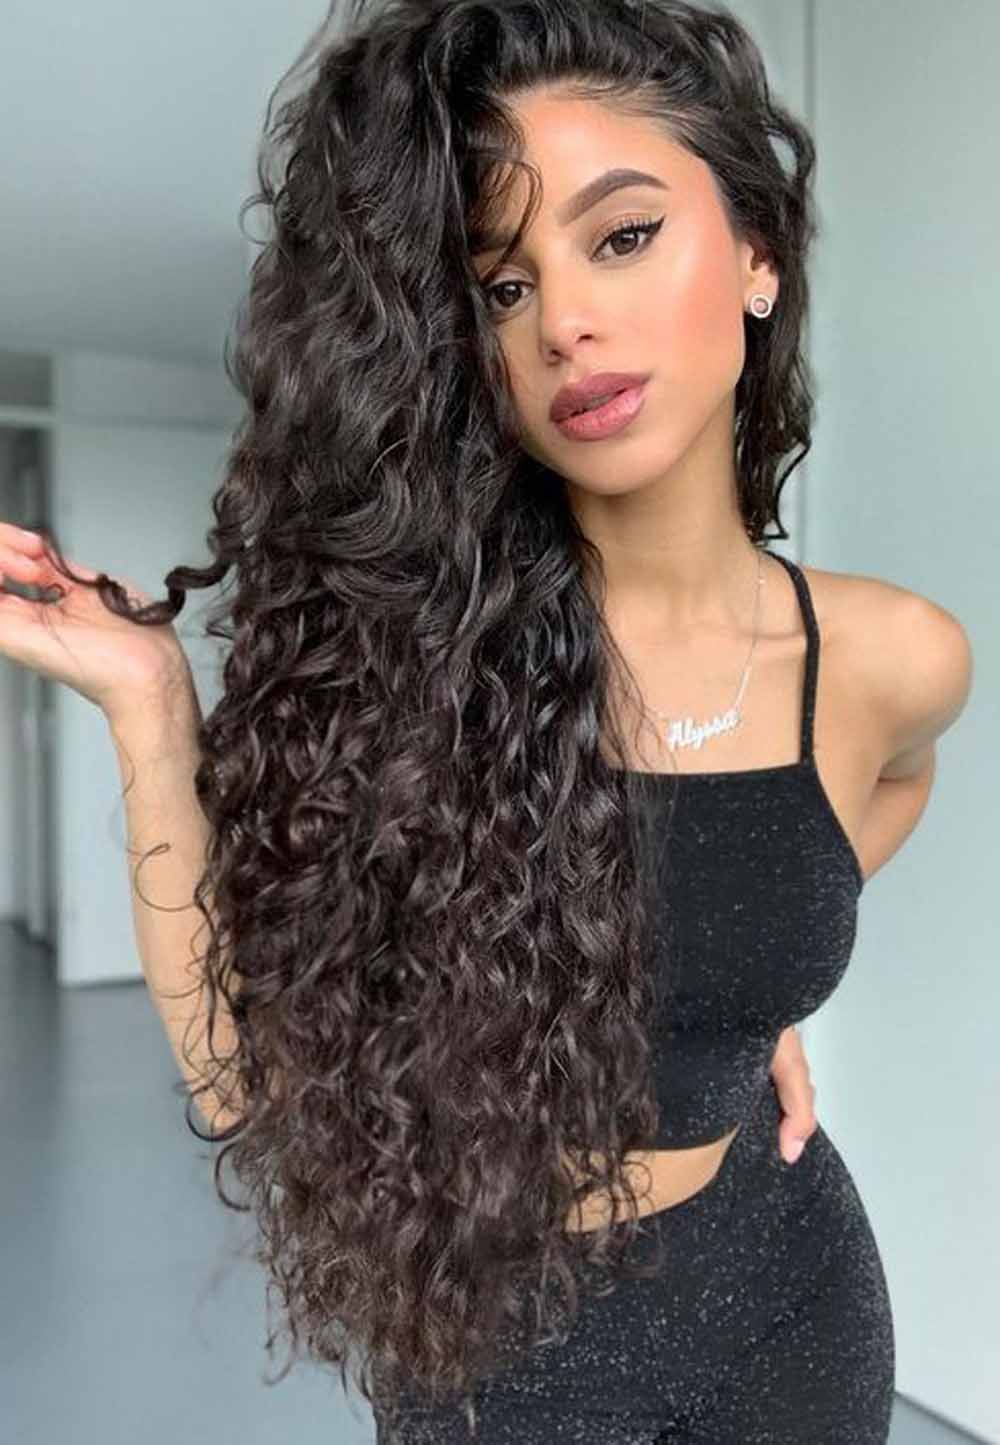 15 Exciting And Glamour Curly Hairstyles Ideas For Enjoying Spring Beautiful Curly Hair Curly Hair Styles Curly Hair Women